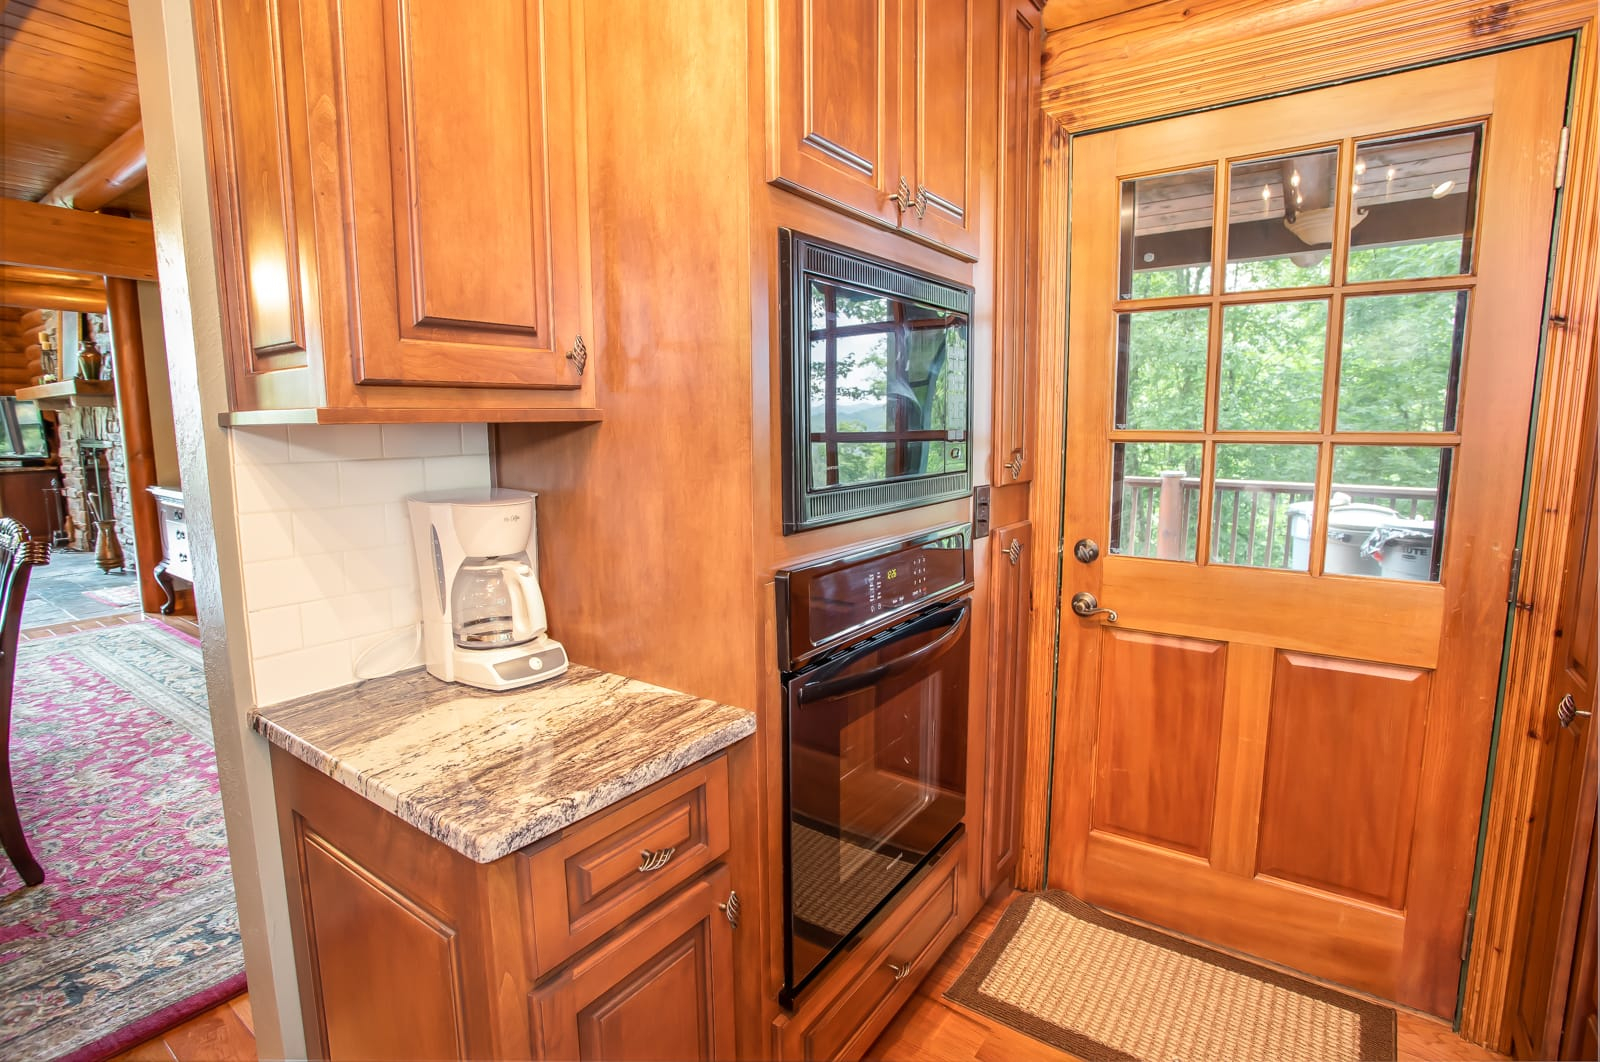 Seaforth Kitchen With Lots of Counter Space, Opens to Dining, Deck, Entry Hall and Parking Area